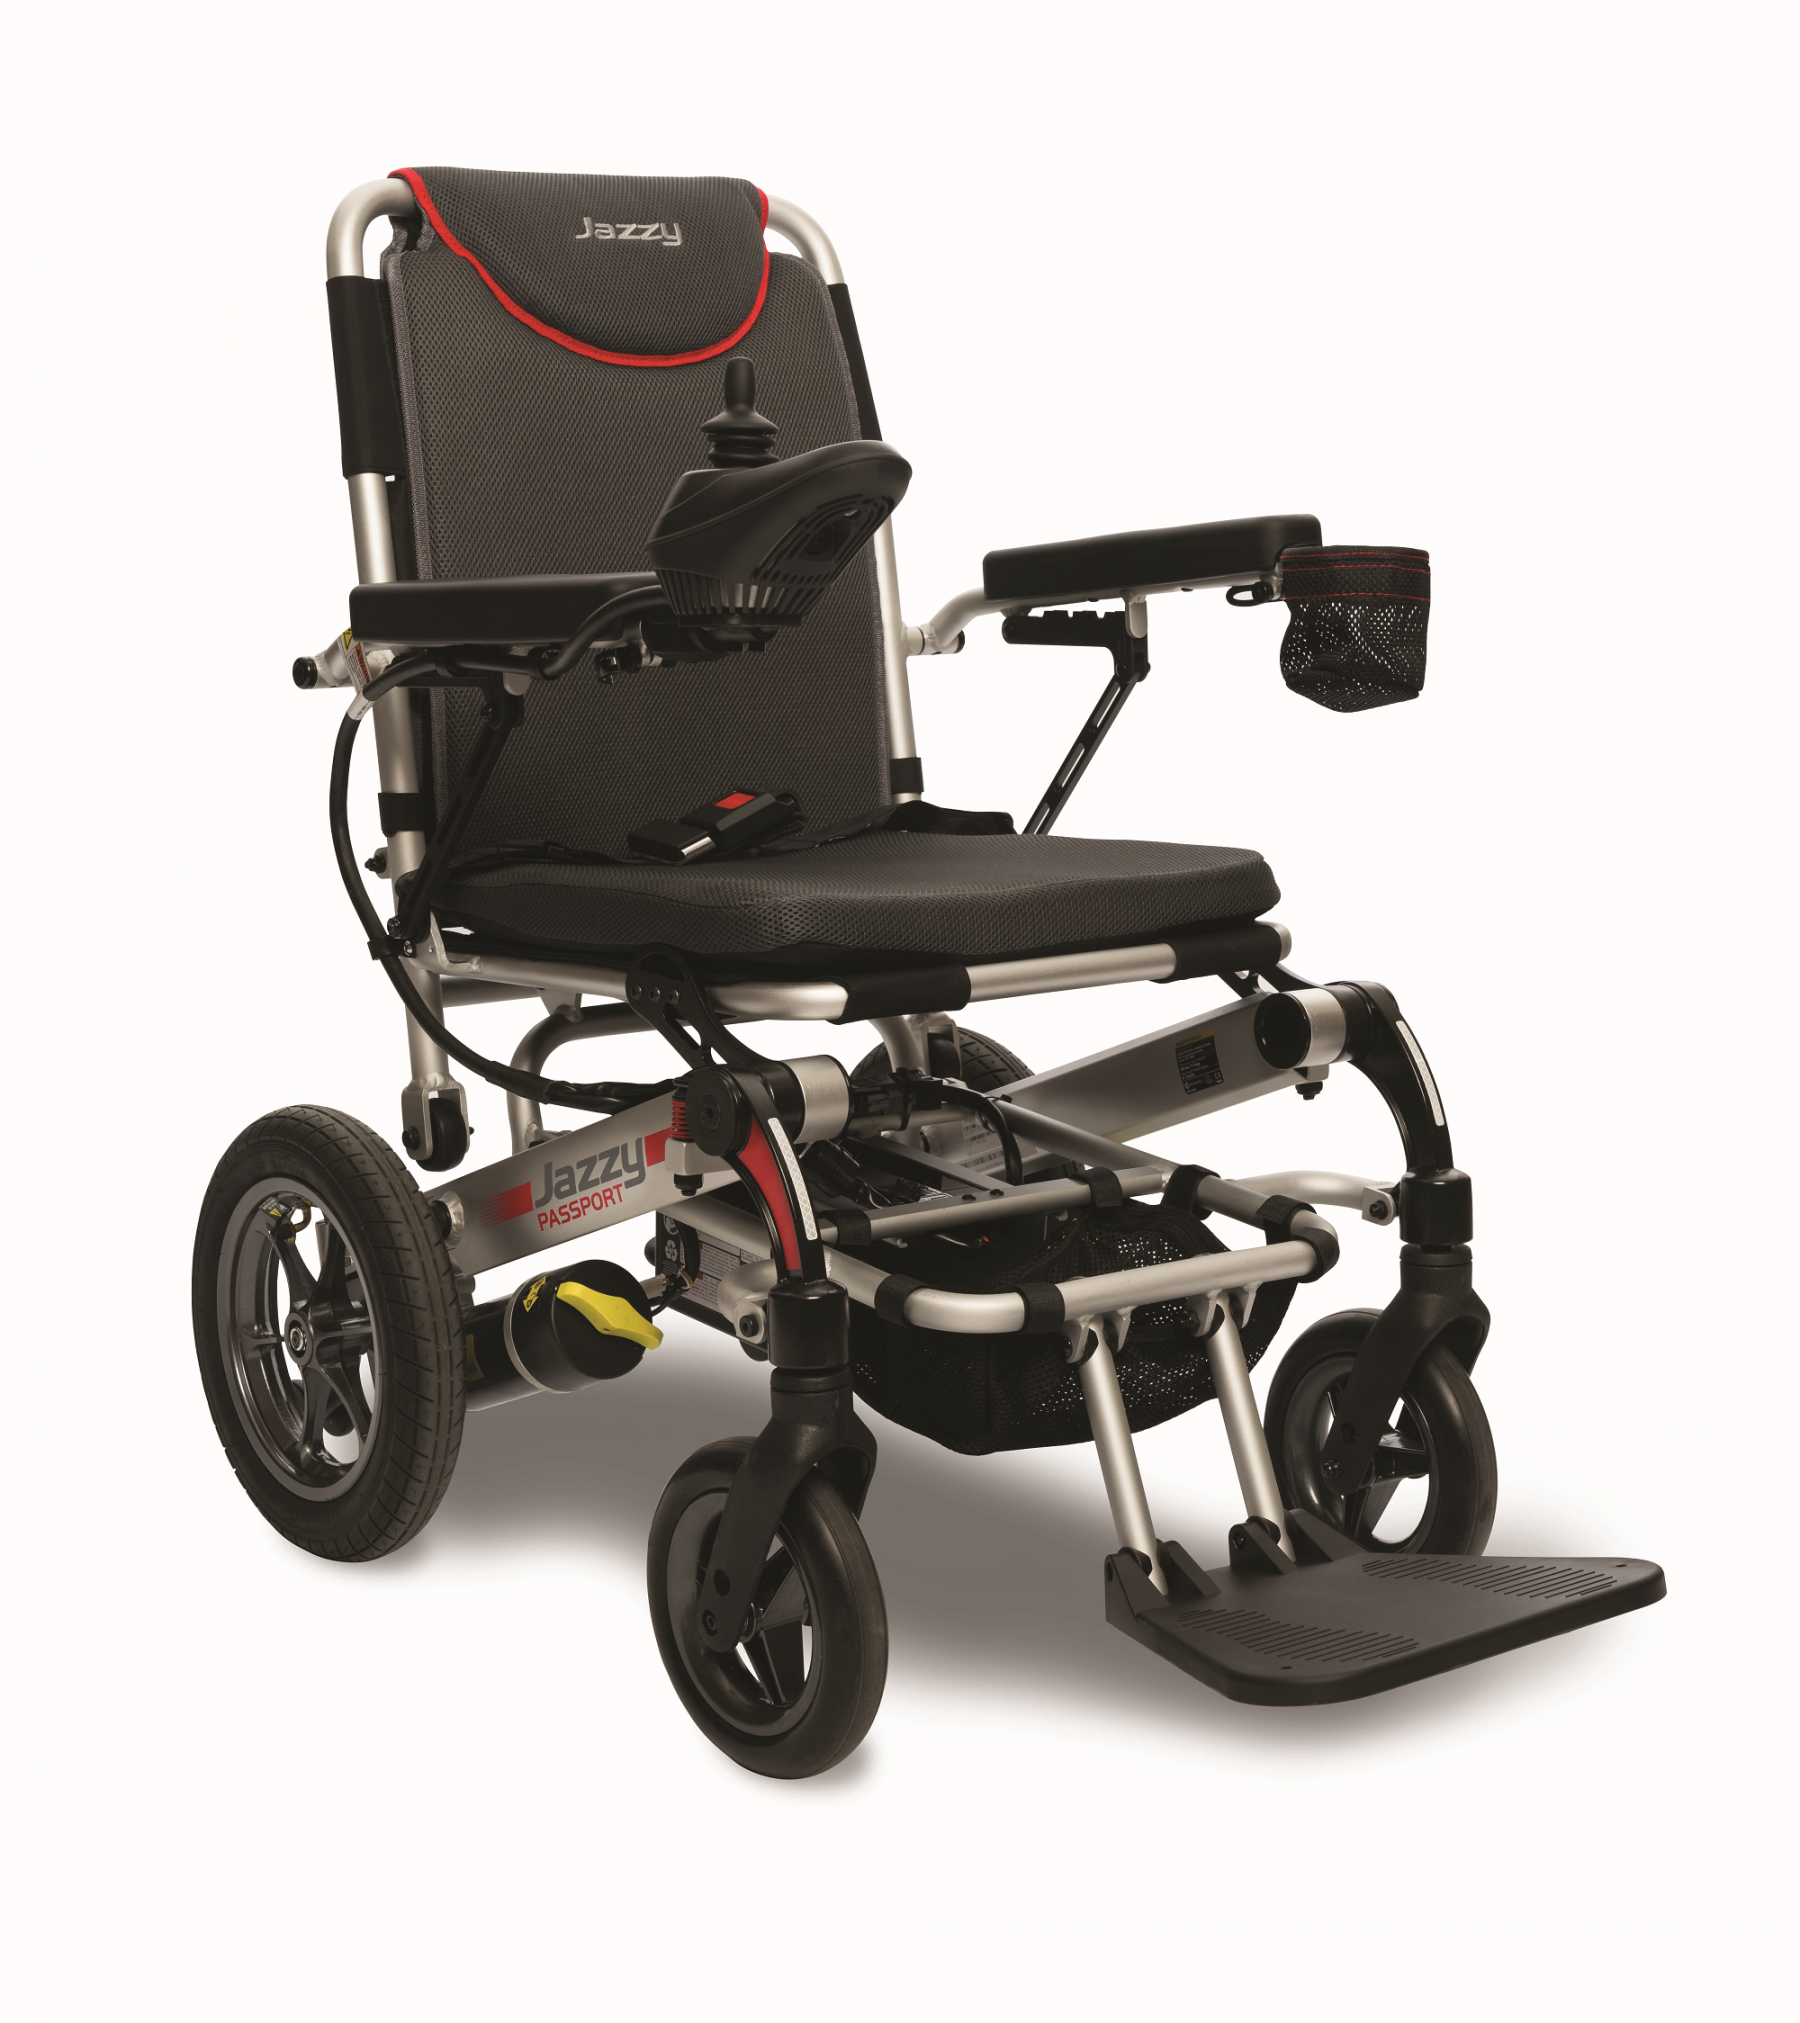 Pride jazzy passport folding power wheelchair for sale online for Cost of motorized wheelchair